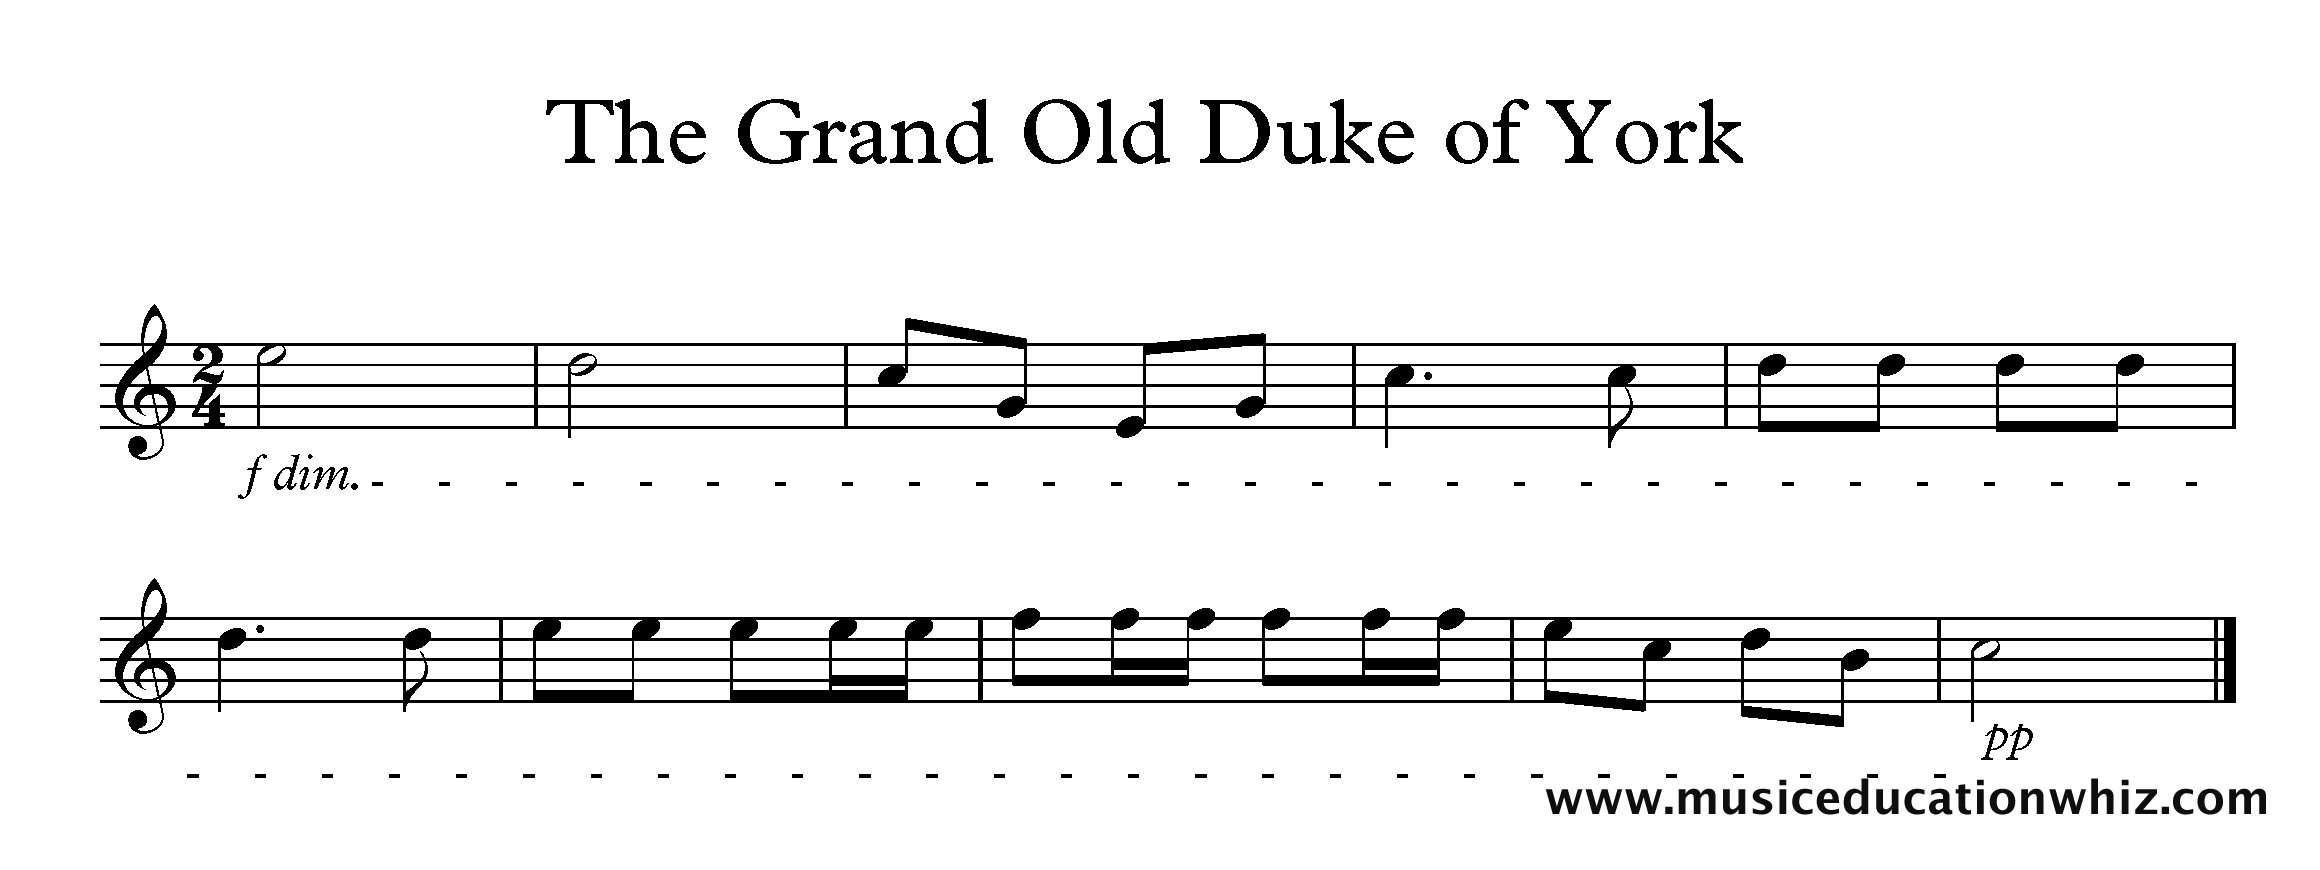 The Grand Old Duke of York melody starting f followed by a dim. followed by a dashed line to a pp at the end.